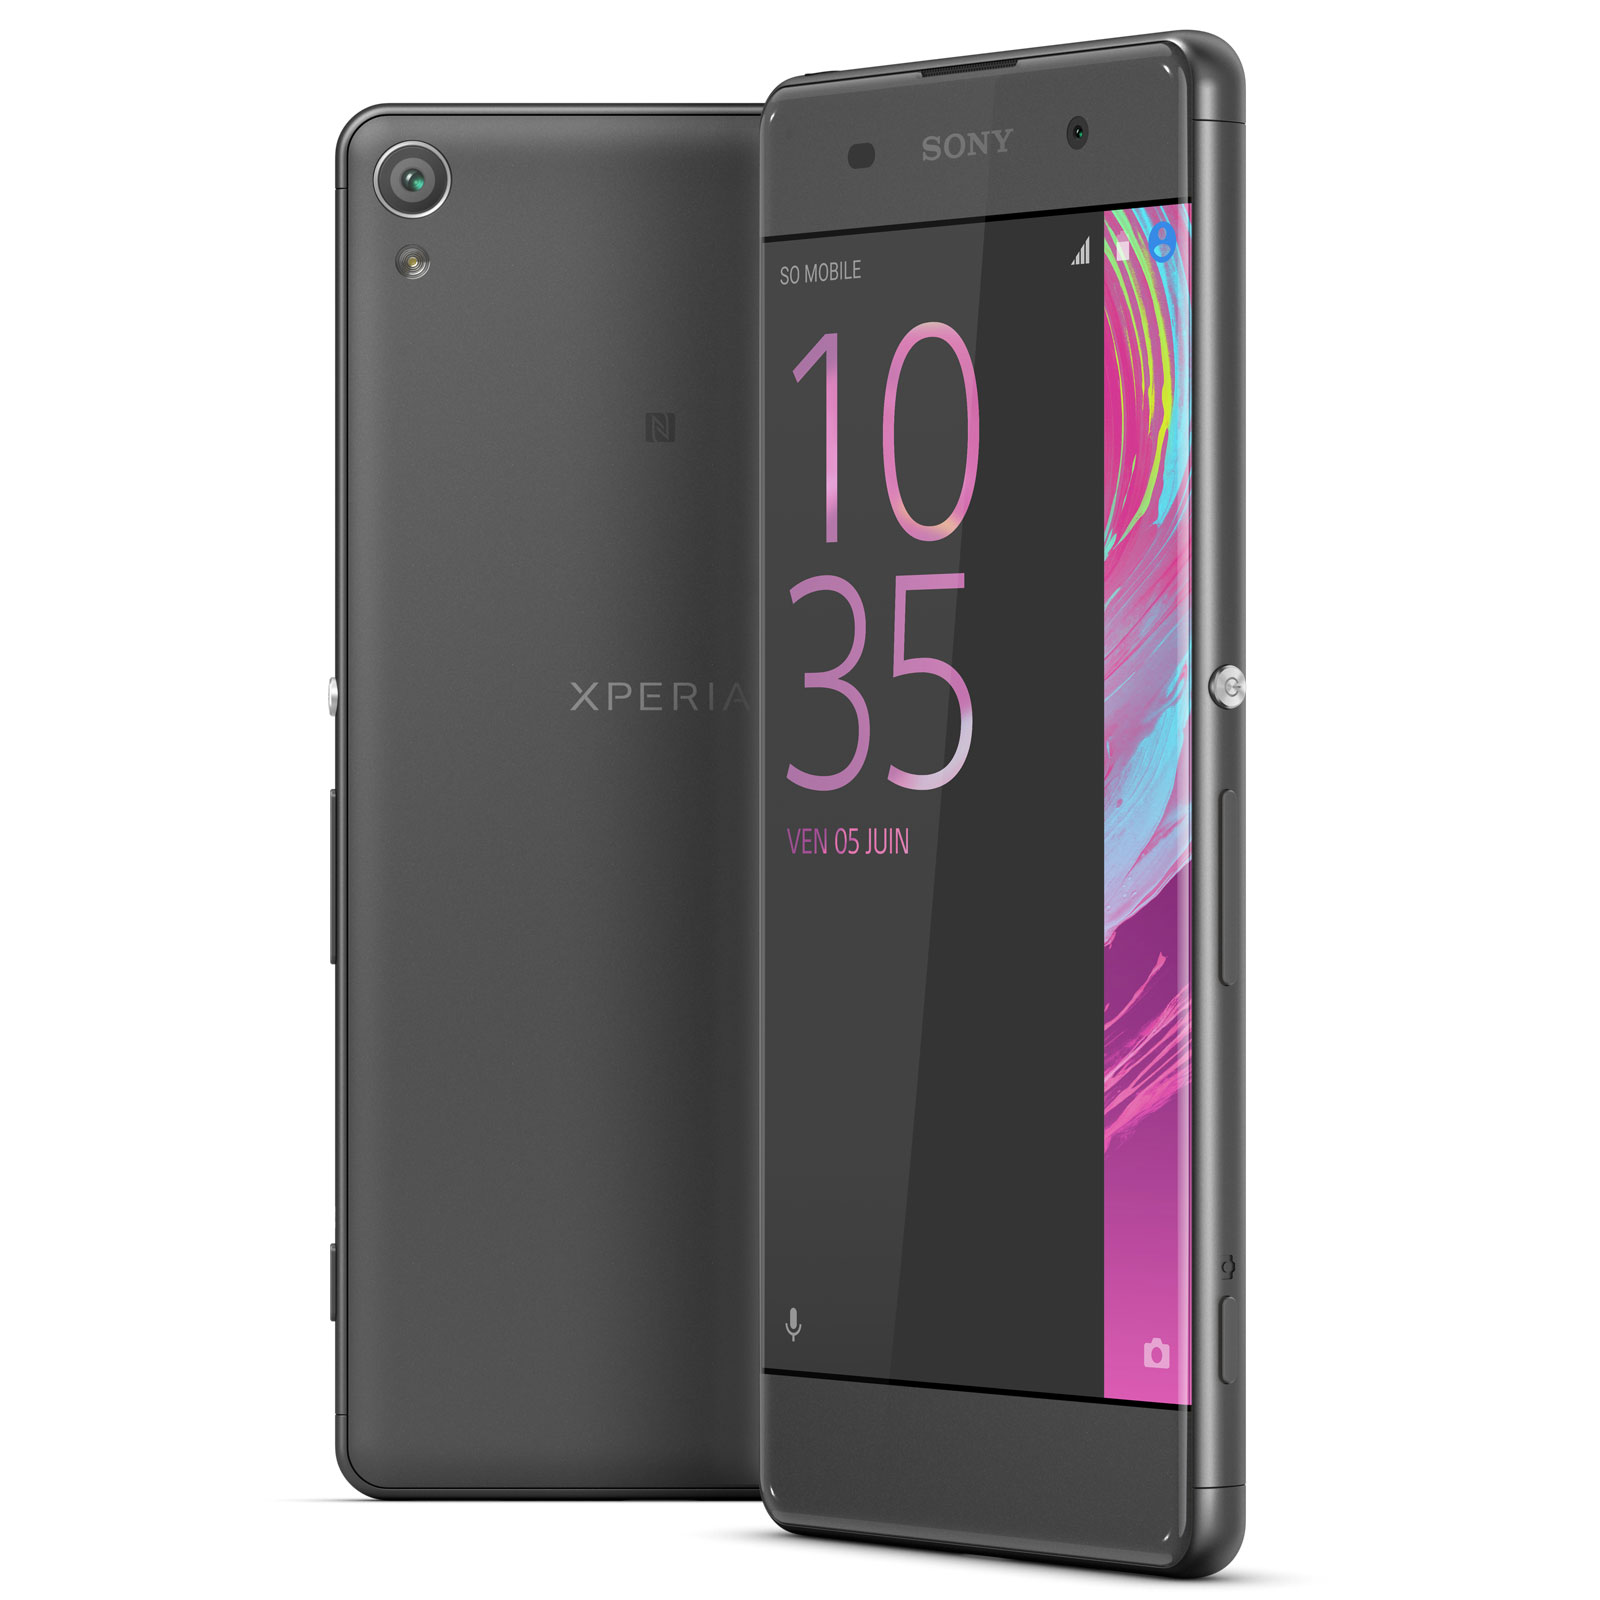 sony xperia xa dual sim 16 go noir mobile smartphone sony sur. Black Bedroom Furniture Sets. Home Design Ideas